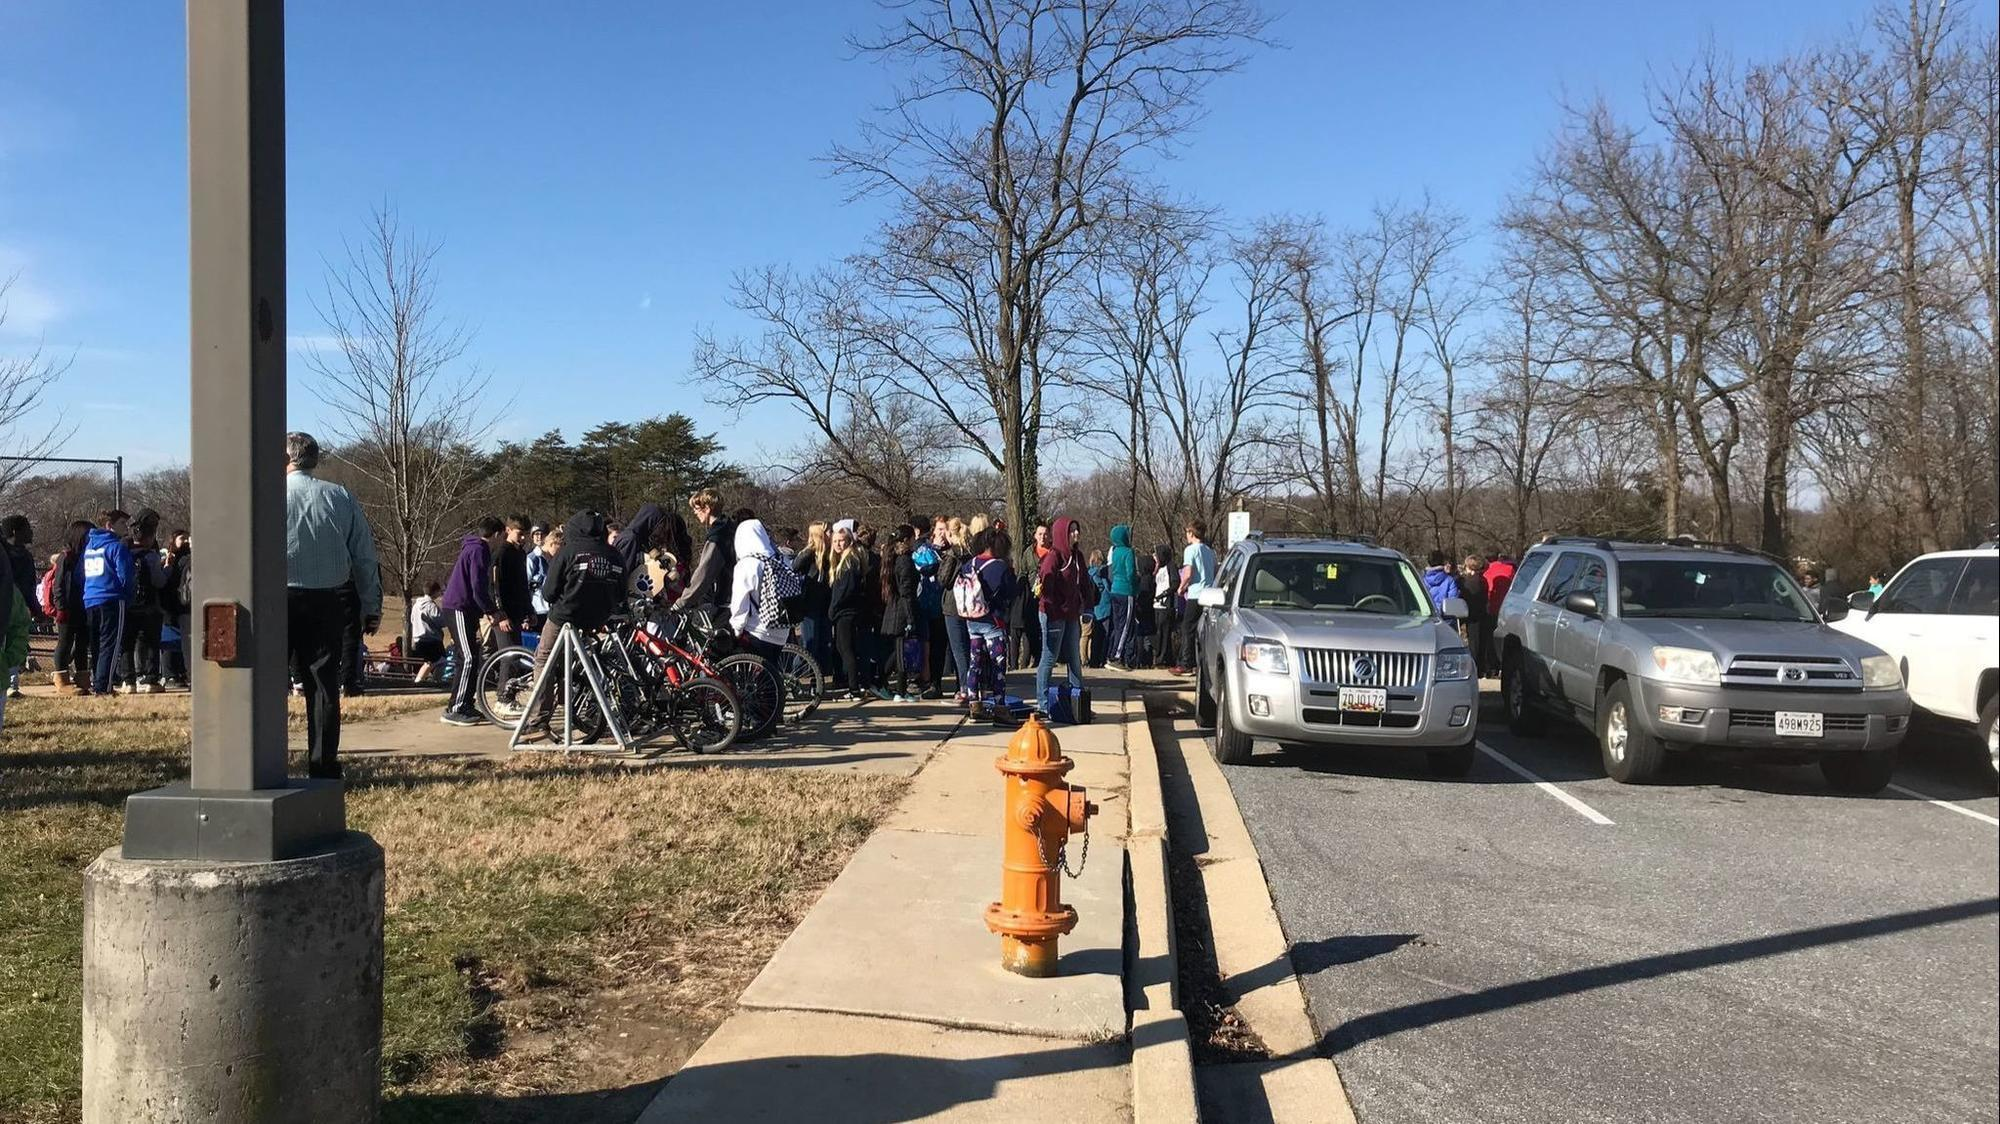 All-clear given after Catonsville Middle School evacuated for strange odor